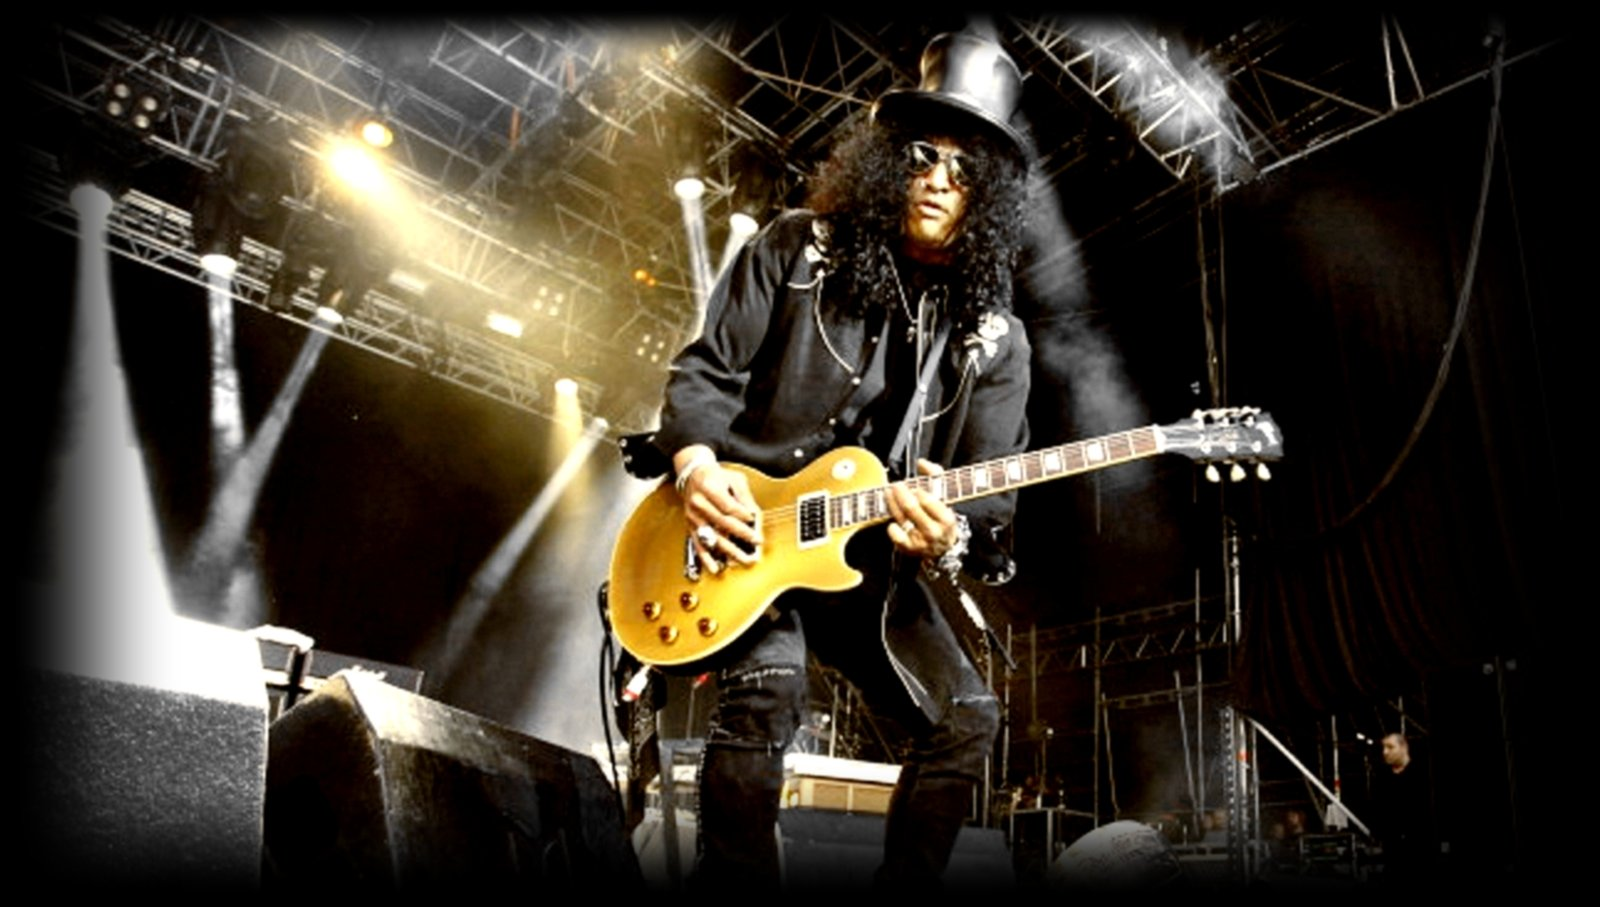 slash Wallpaper and Background Image | 1600x907 | ID:434765